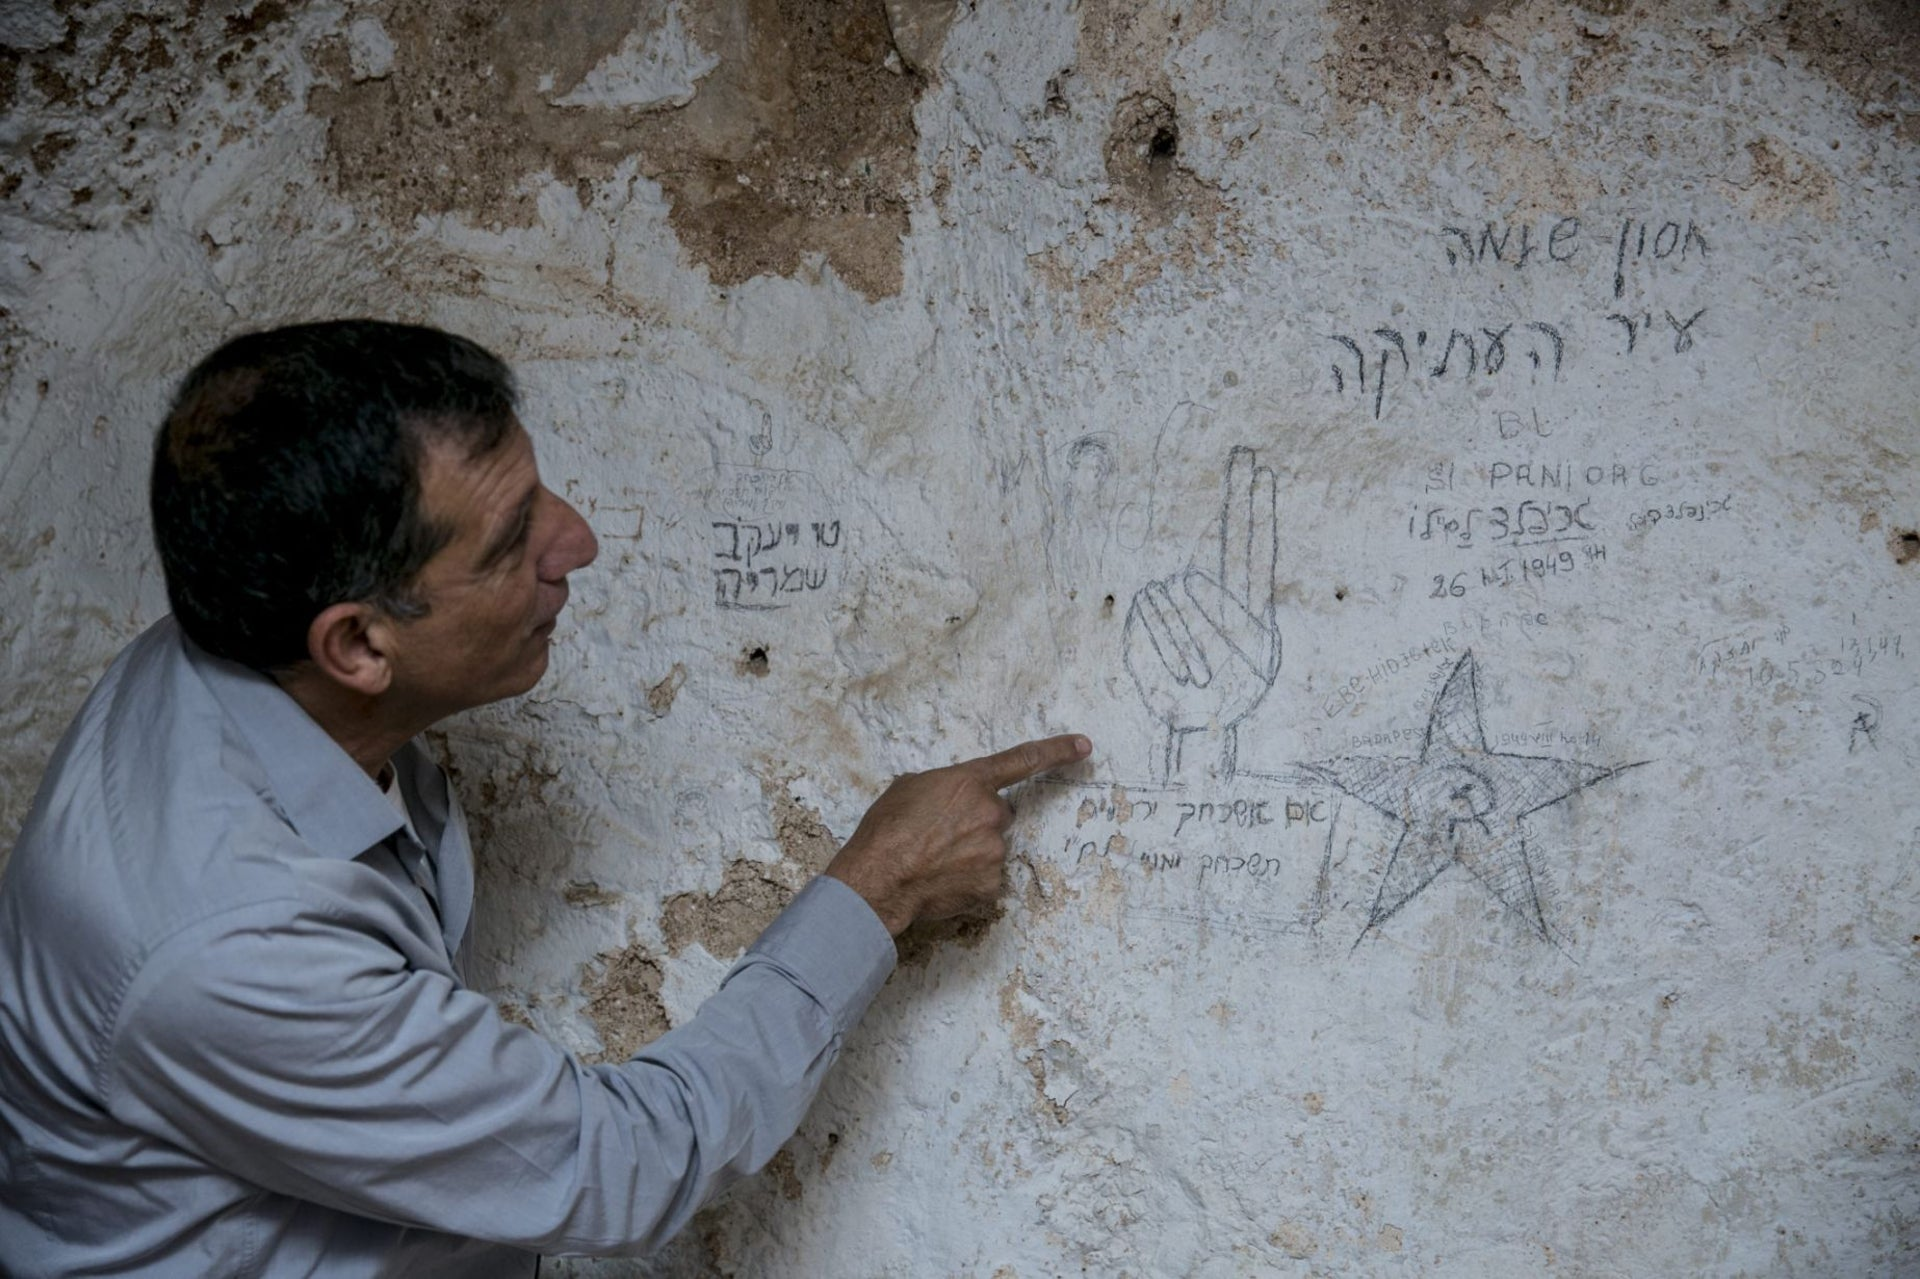 A man points to nationalist and communist graffiti left by Lehi fighters, Jerusalem, May 2016.